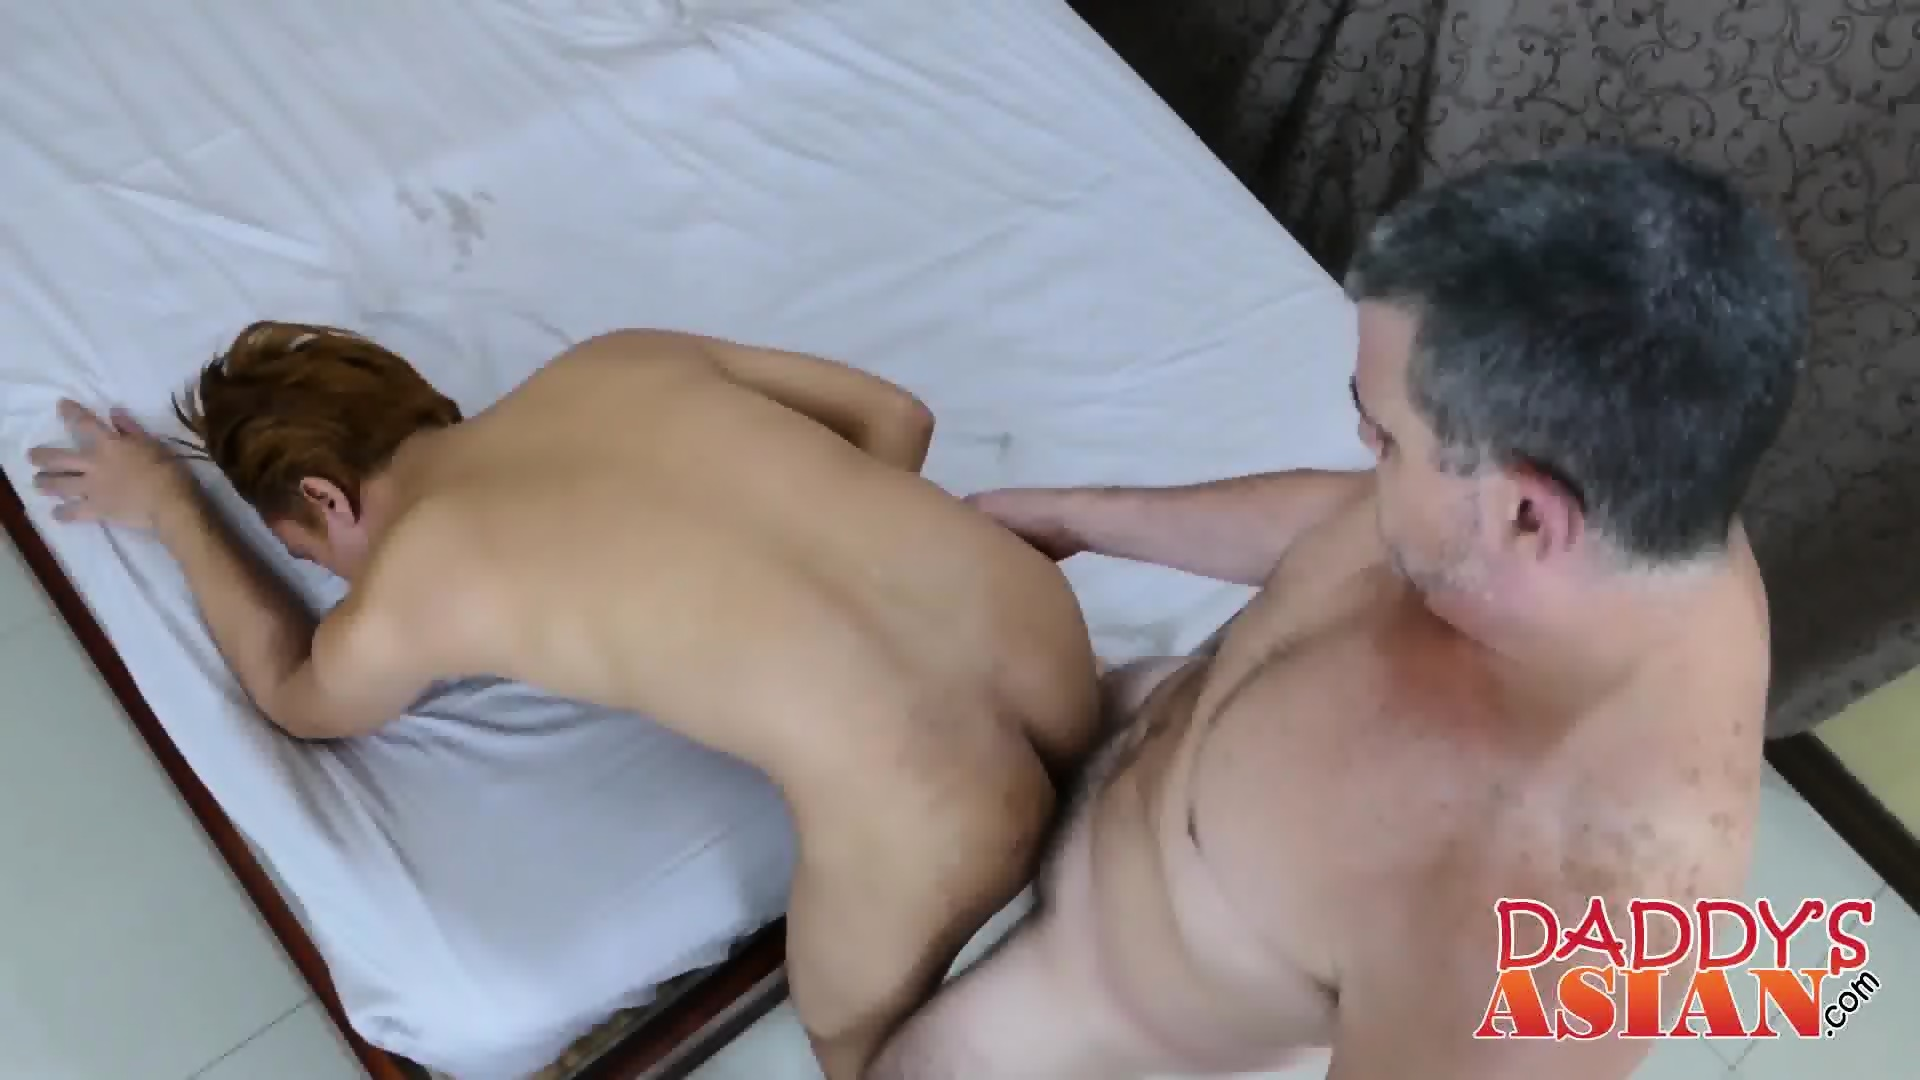 Dirty Horny Teen Twinks Get Busy